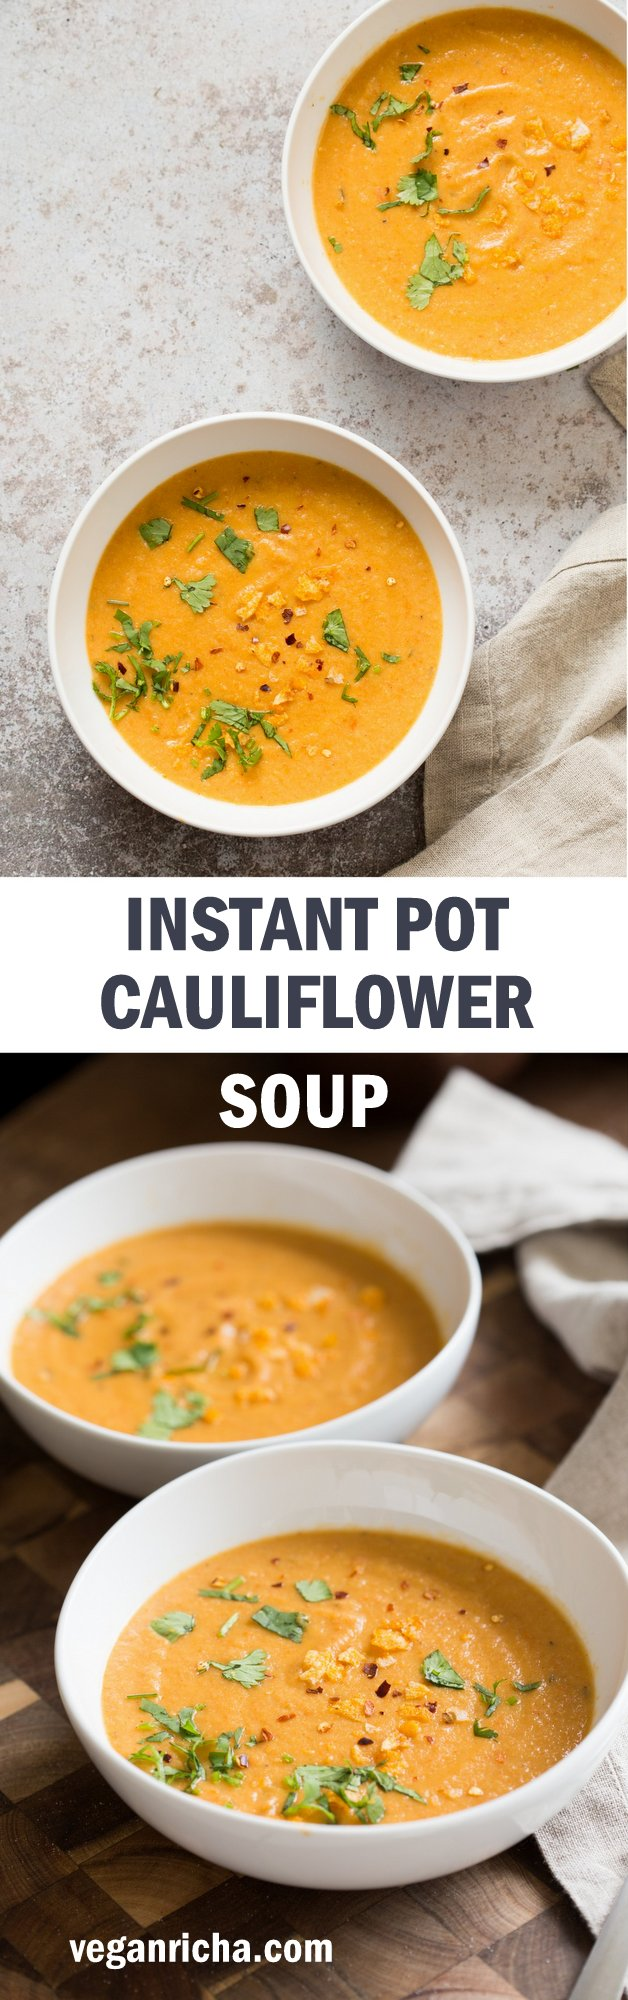 Instant Pot Cauliflower Soup - Smoky Vegan Cauliflower Soup with Red Peppers and Smoked Paprika. Just 5 mins pre, no Immersion blender needed. Hearty and Delicious. Saucepan Option. #Vegan #Glutenfree #Soyfree #Recipe. Can be #Nutfree #veganricha | VeganRicha.com